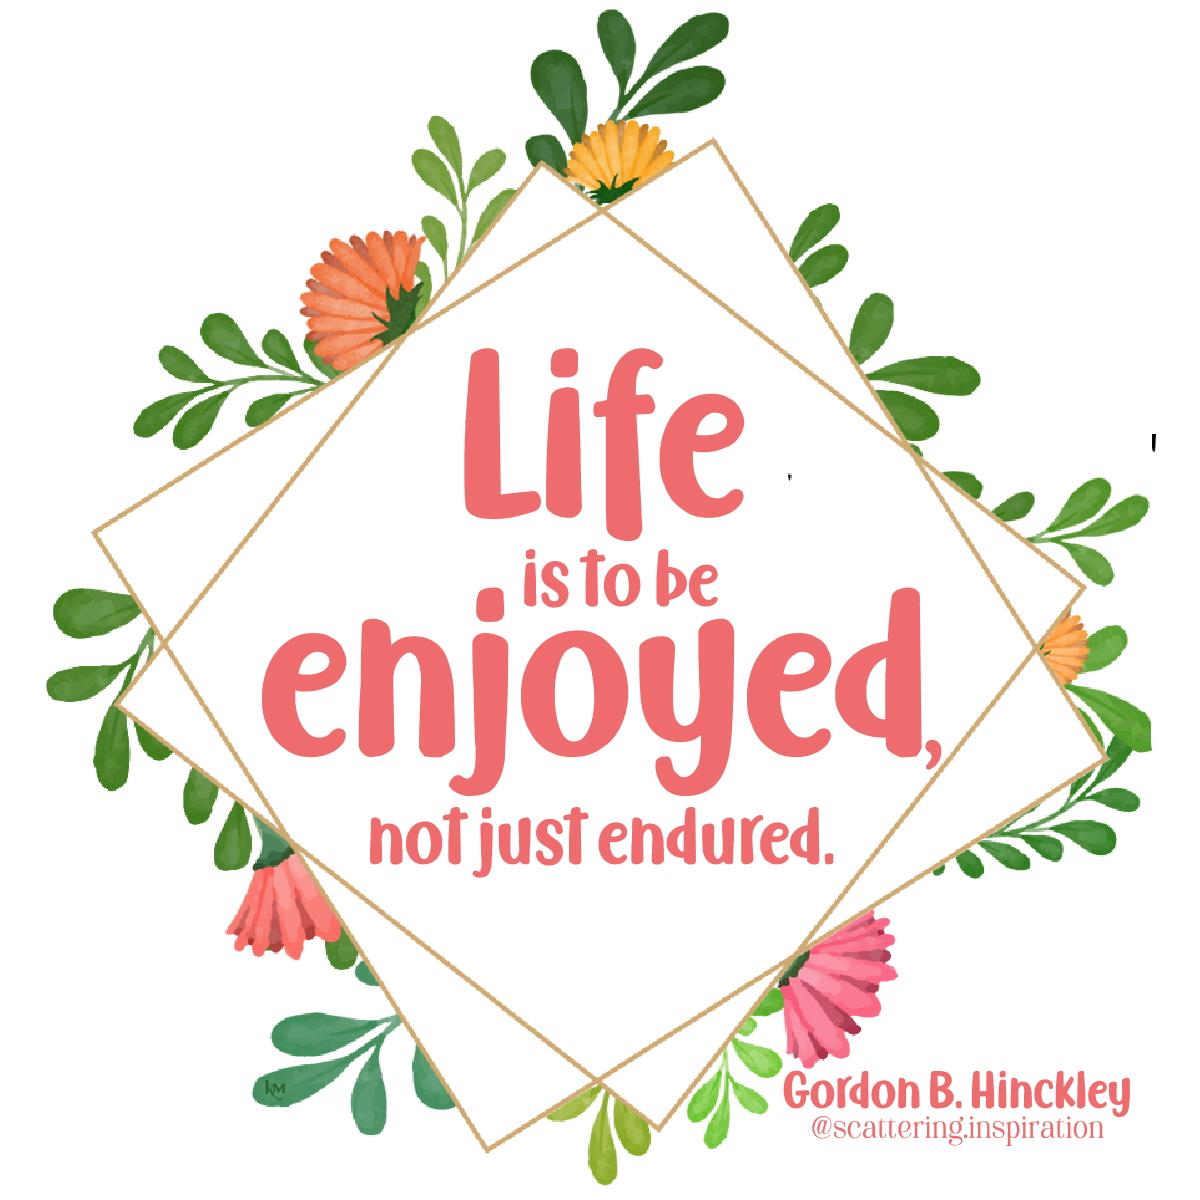 life is to be enjoyed